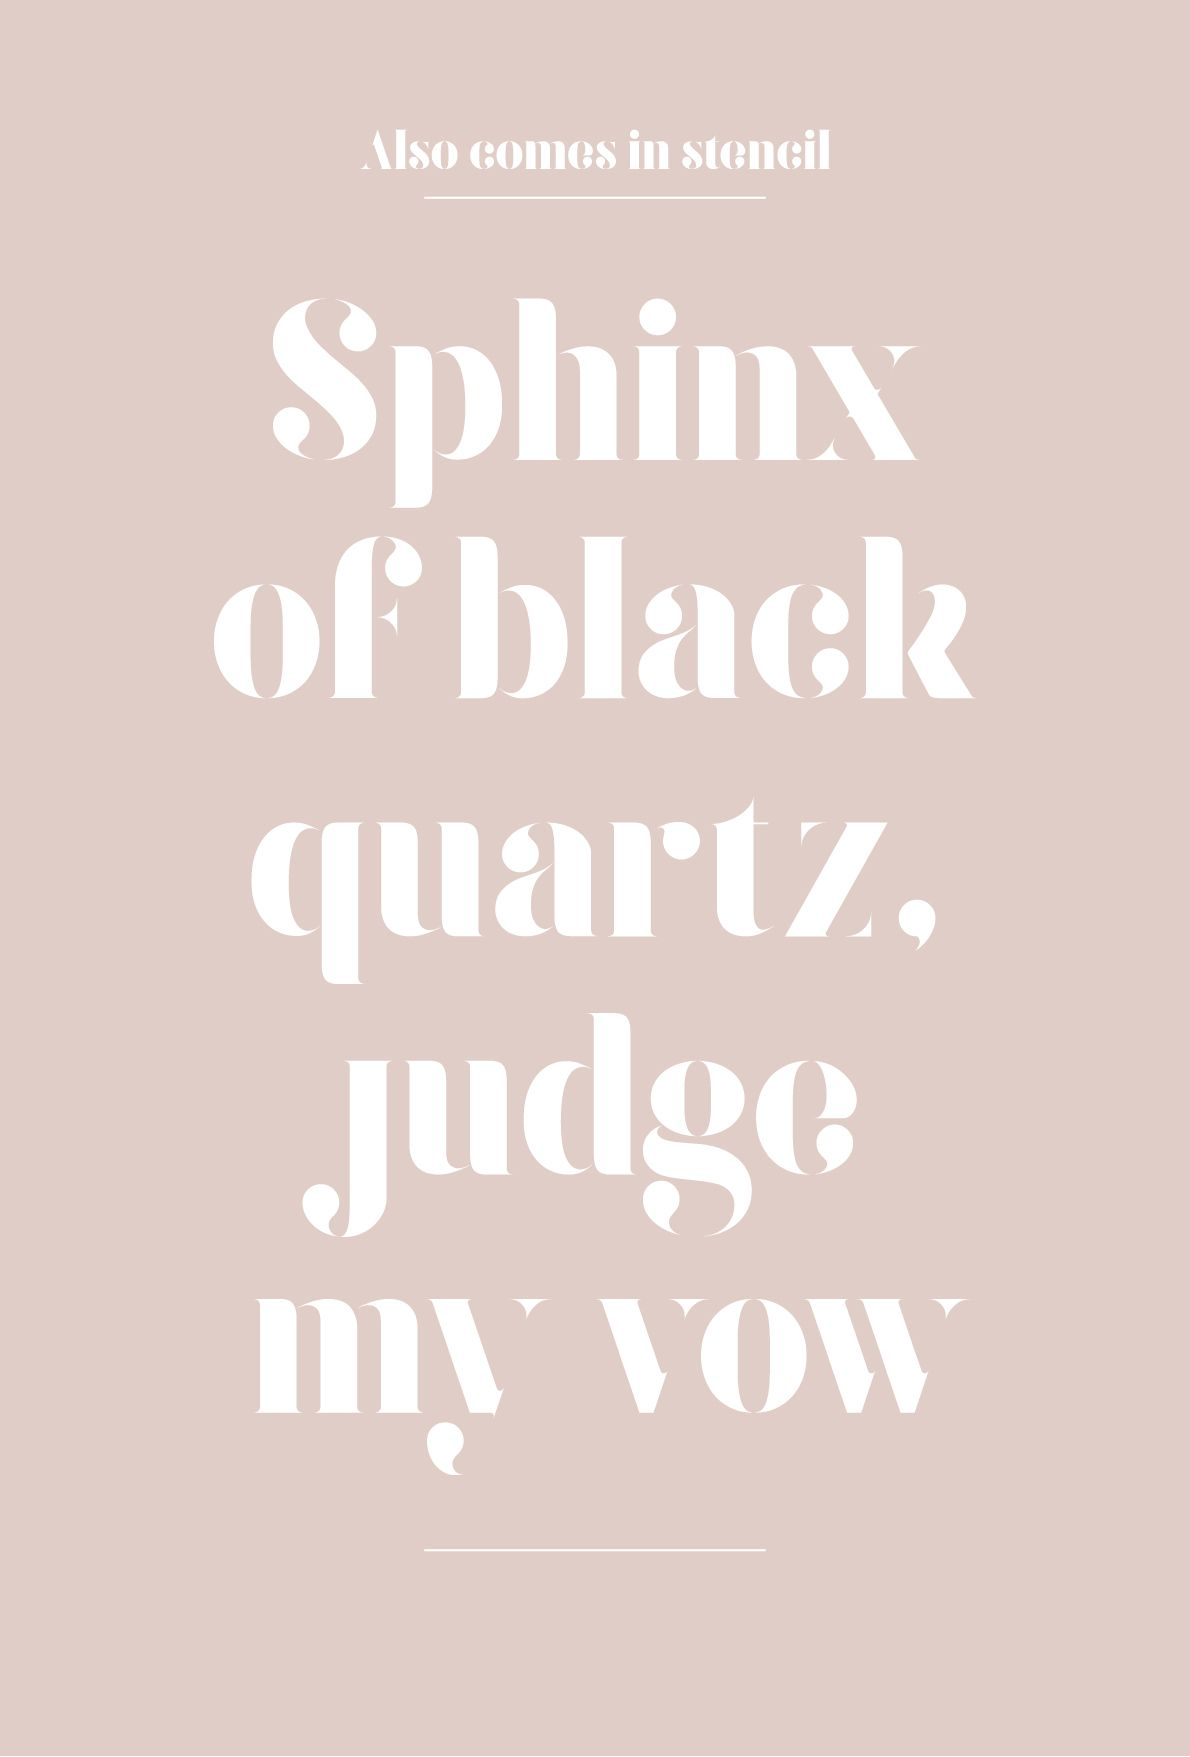 Gokú - An elegant #free #font by Anthony James - #Typography #Typeface